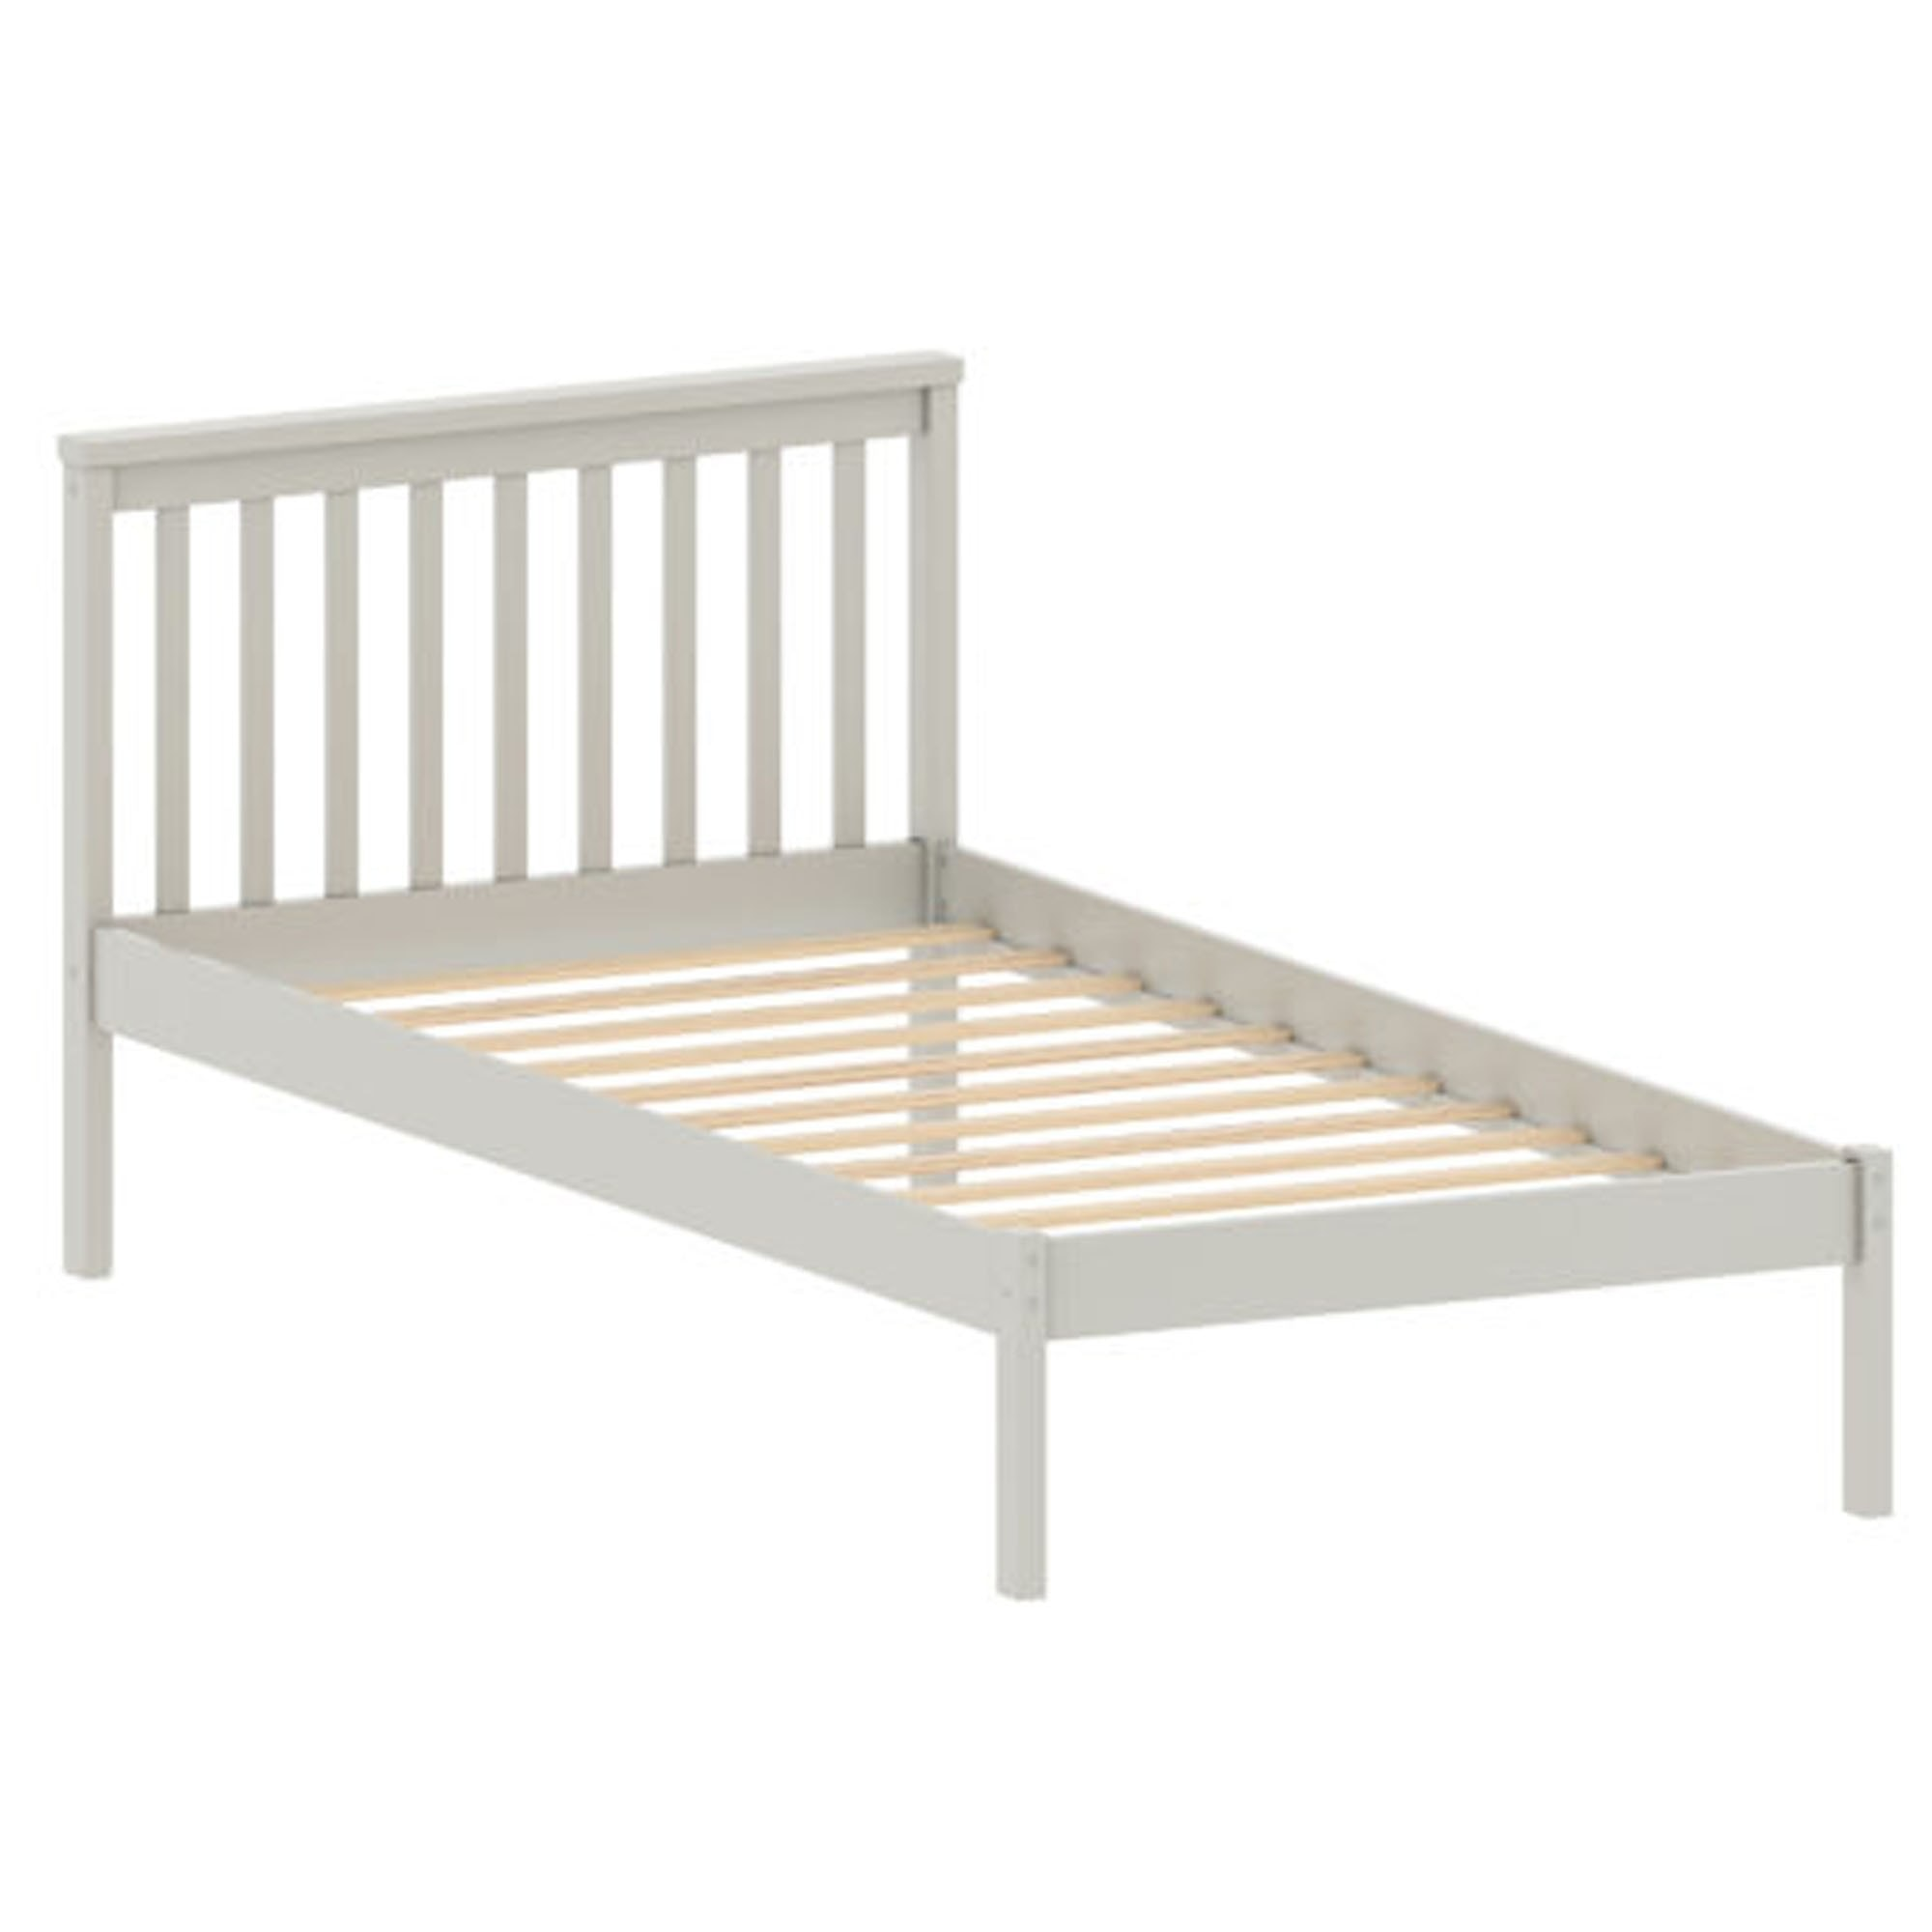 Picture of: Sydney White Wooden Single Bed White Wooden Bed Modern Beds